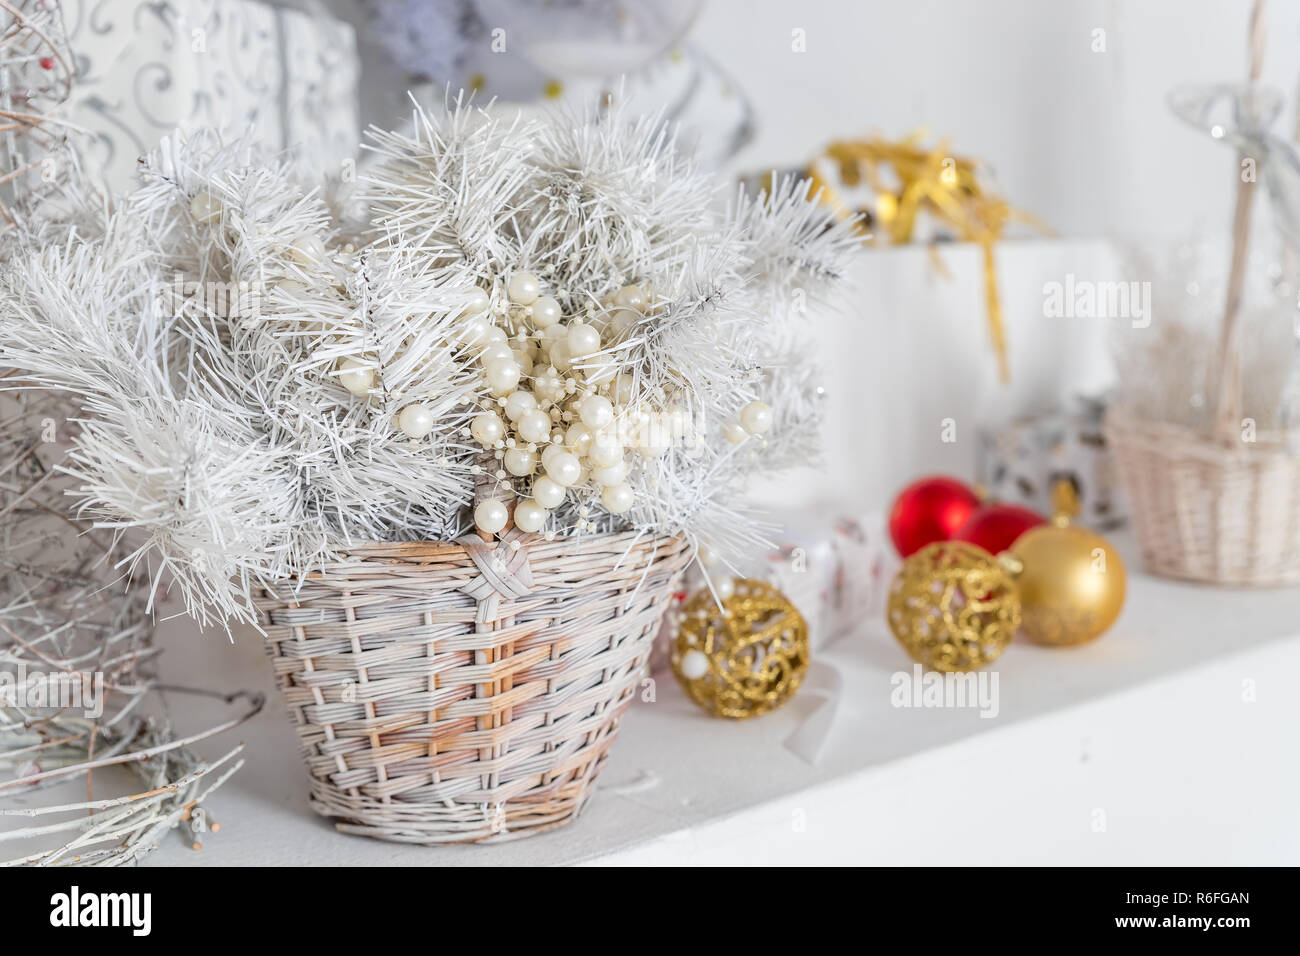 Christmas decoration in wicker basket.Colorful decorative ...